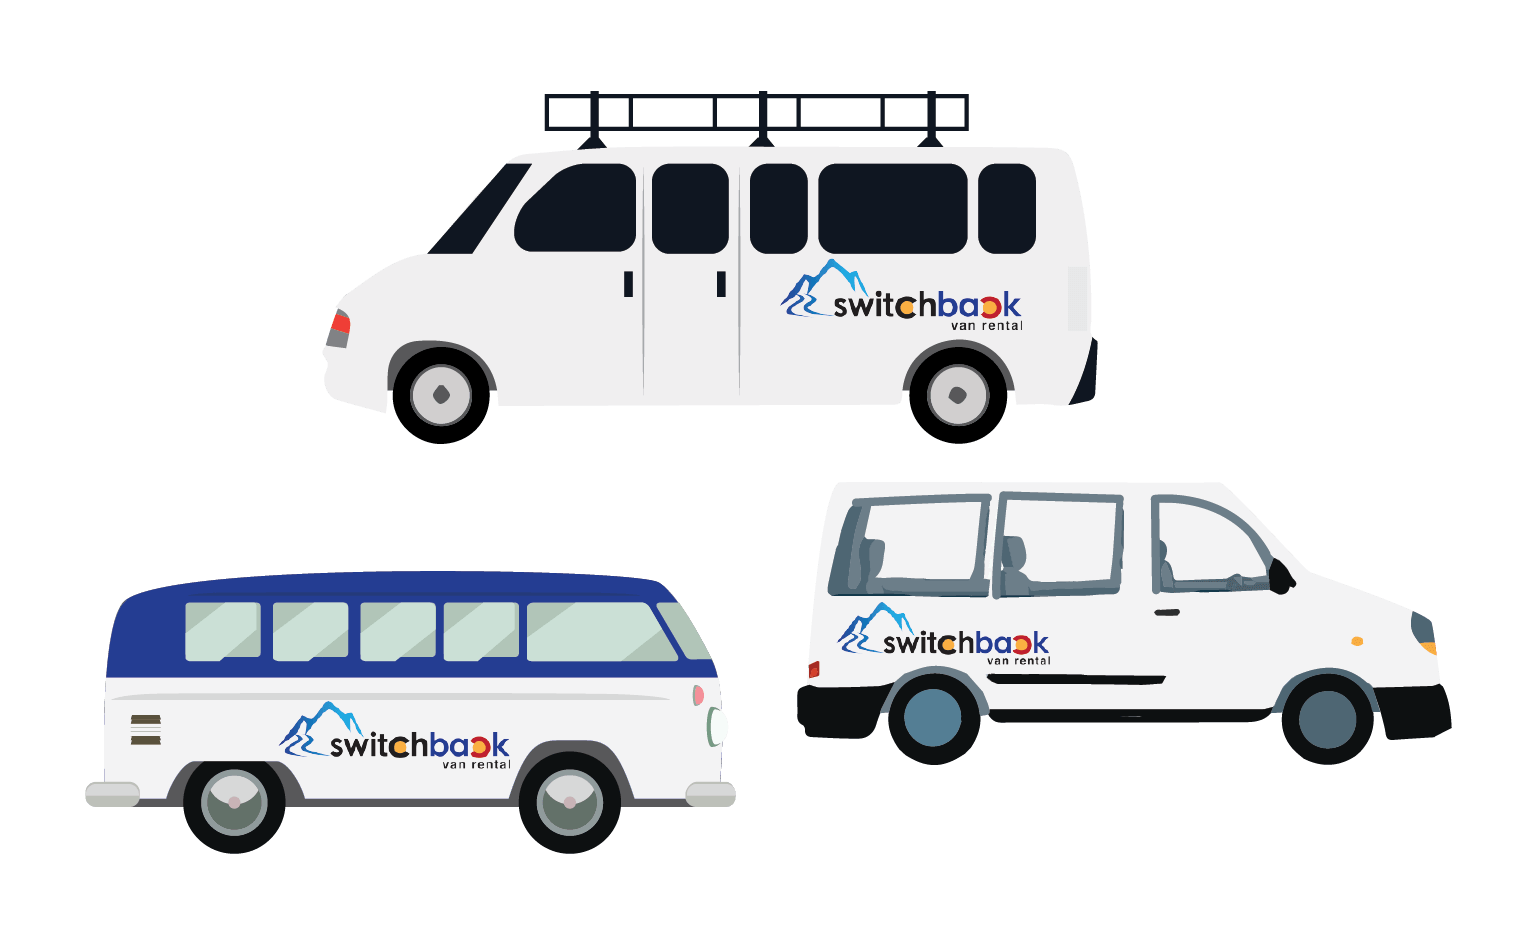 Switchback Always What You Need Rental Image